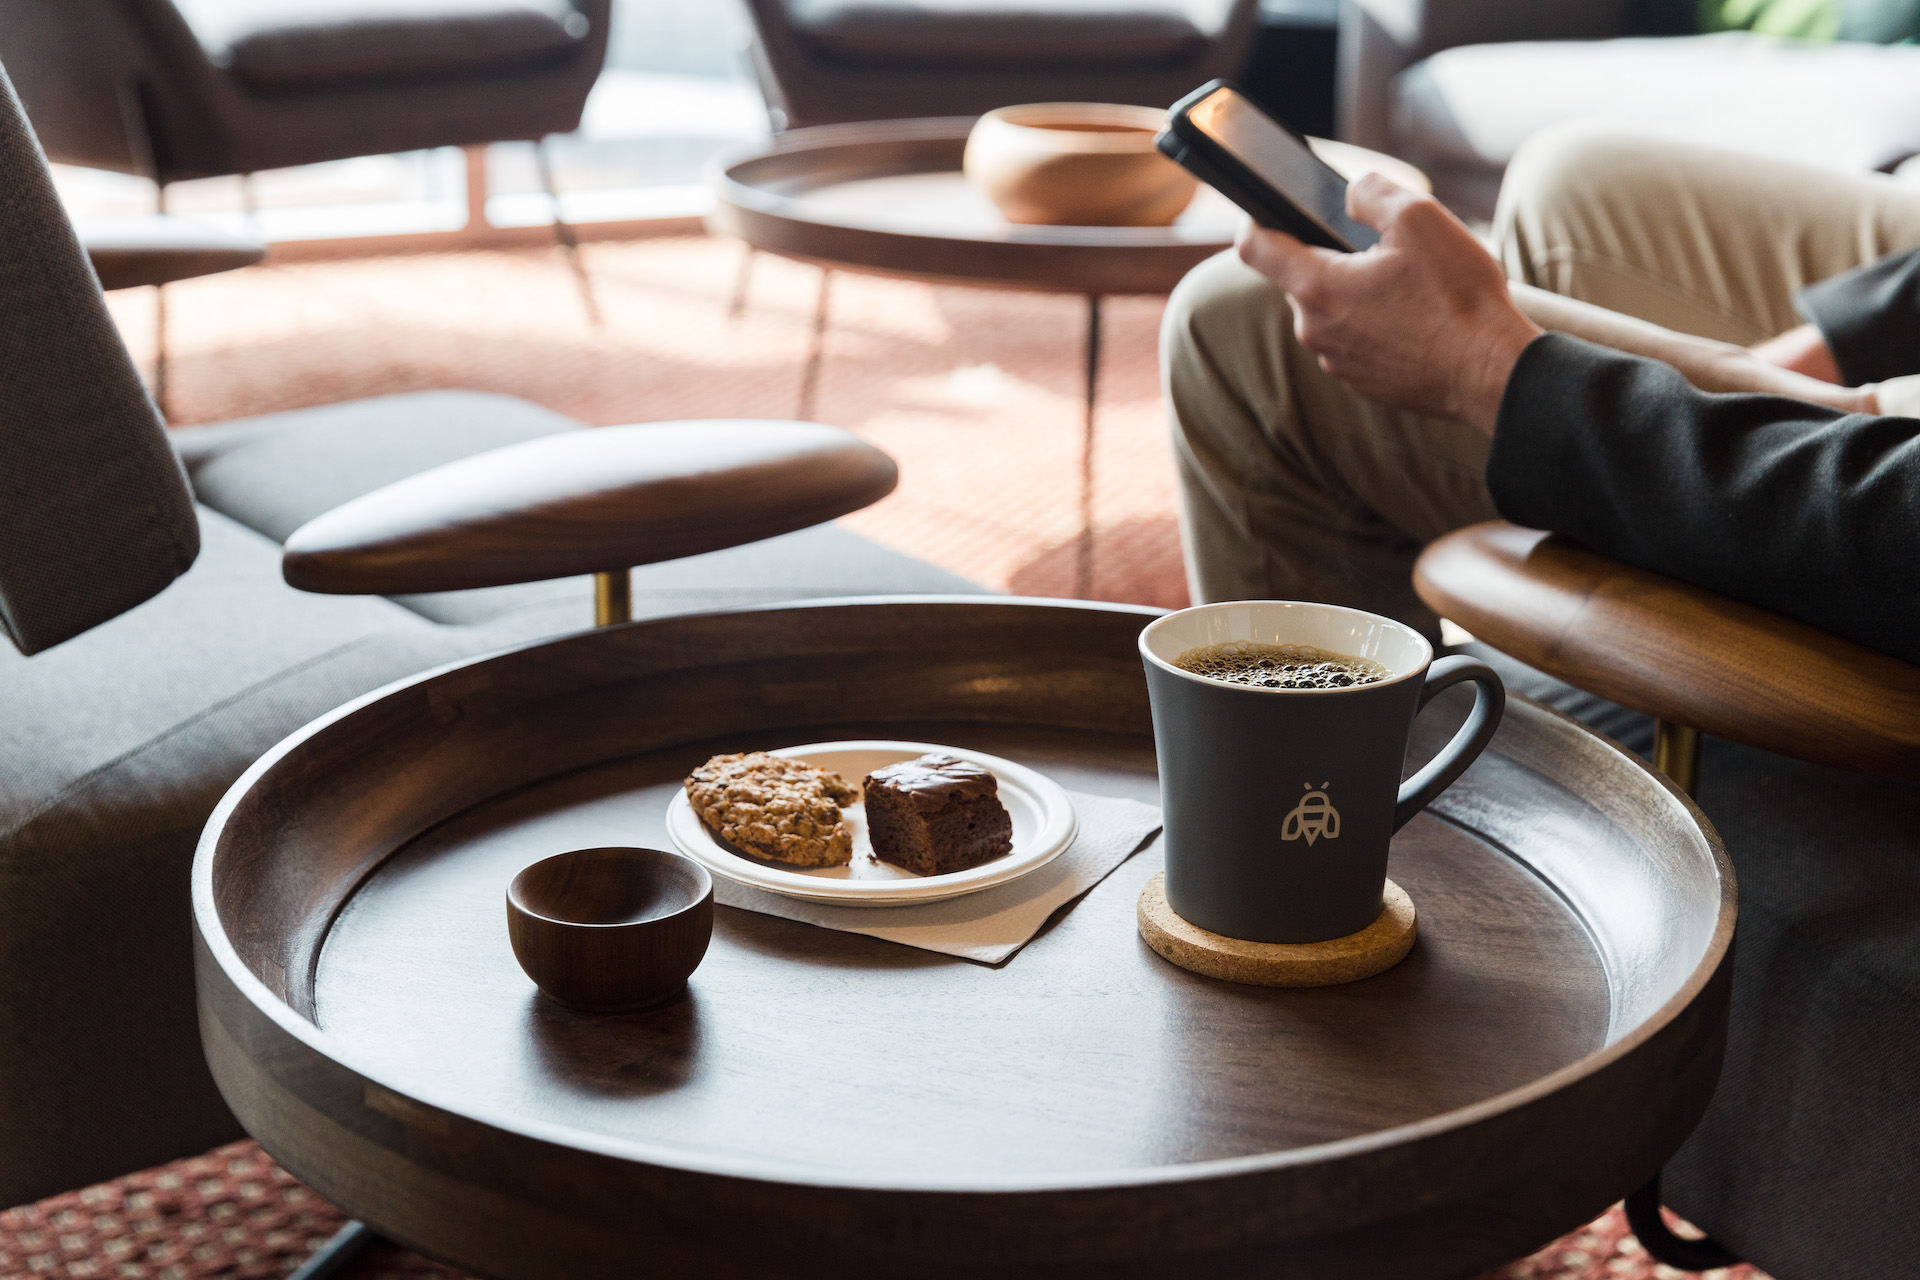 Meeting up for a virtual coffee is a great way to bond with colleagues one-on-one.